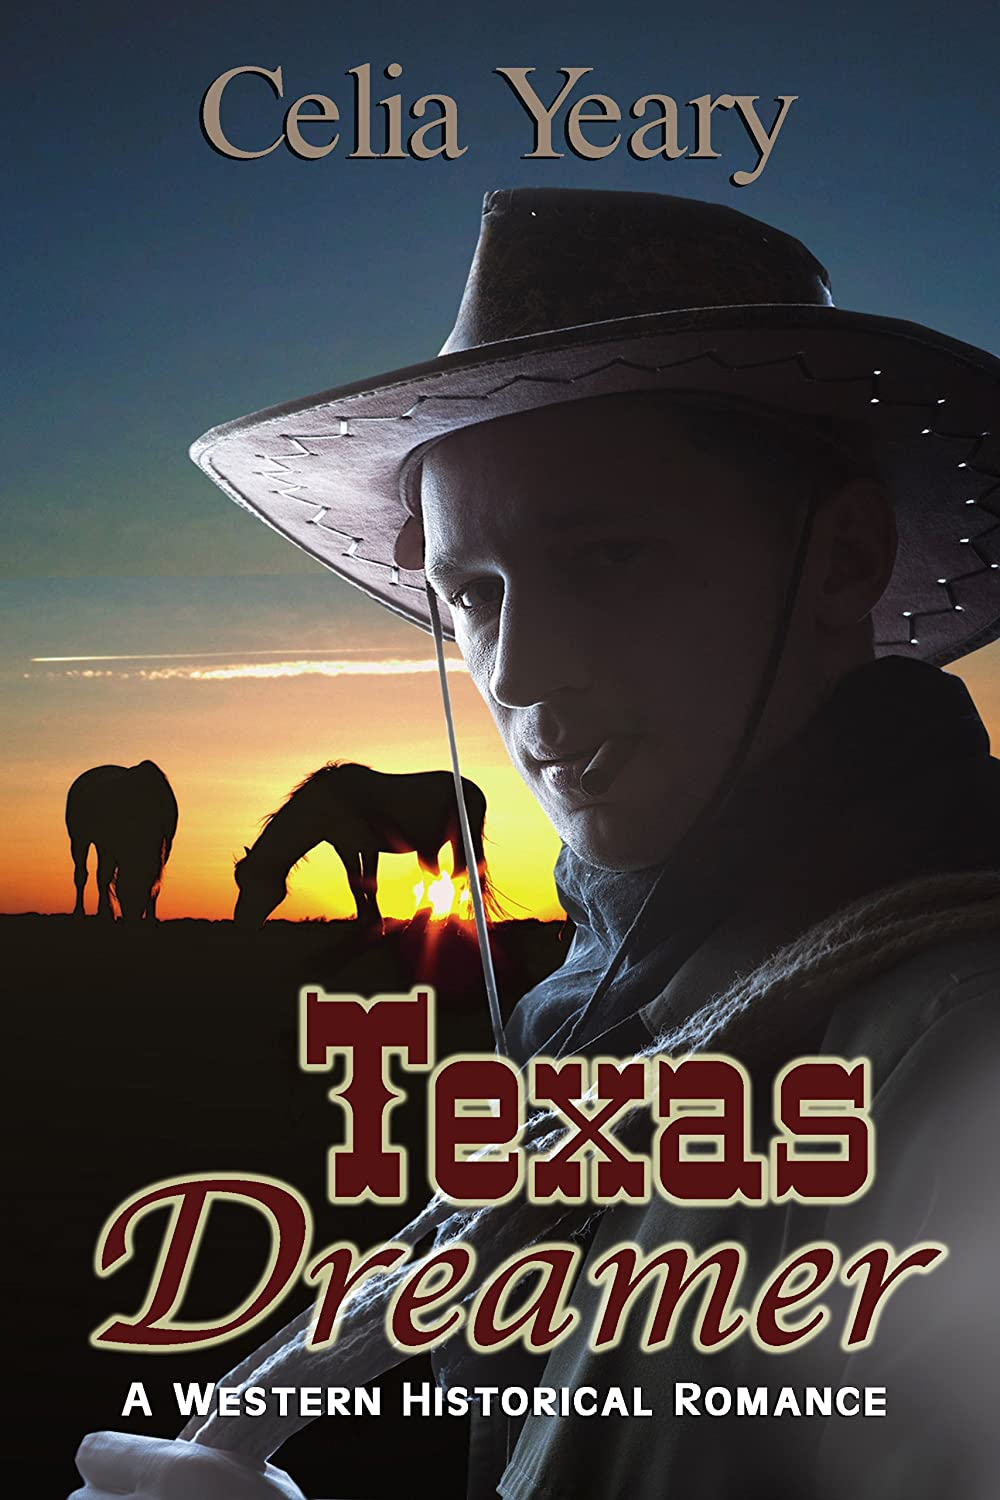 Texas Dreamer by Celia Yeary